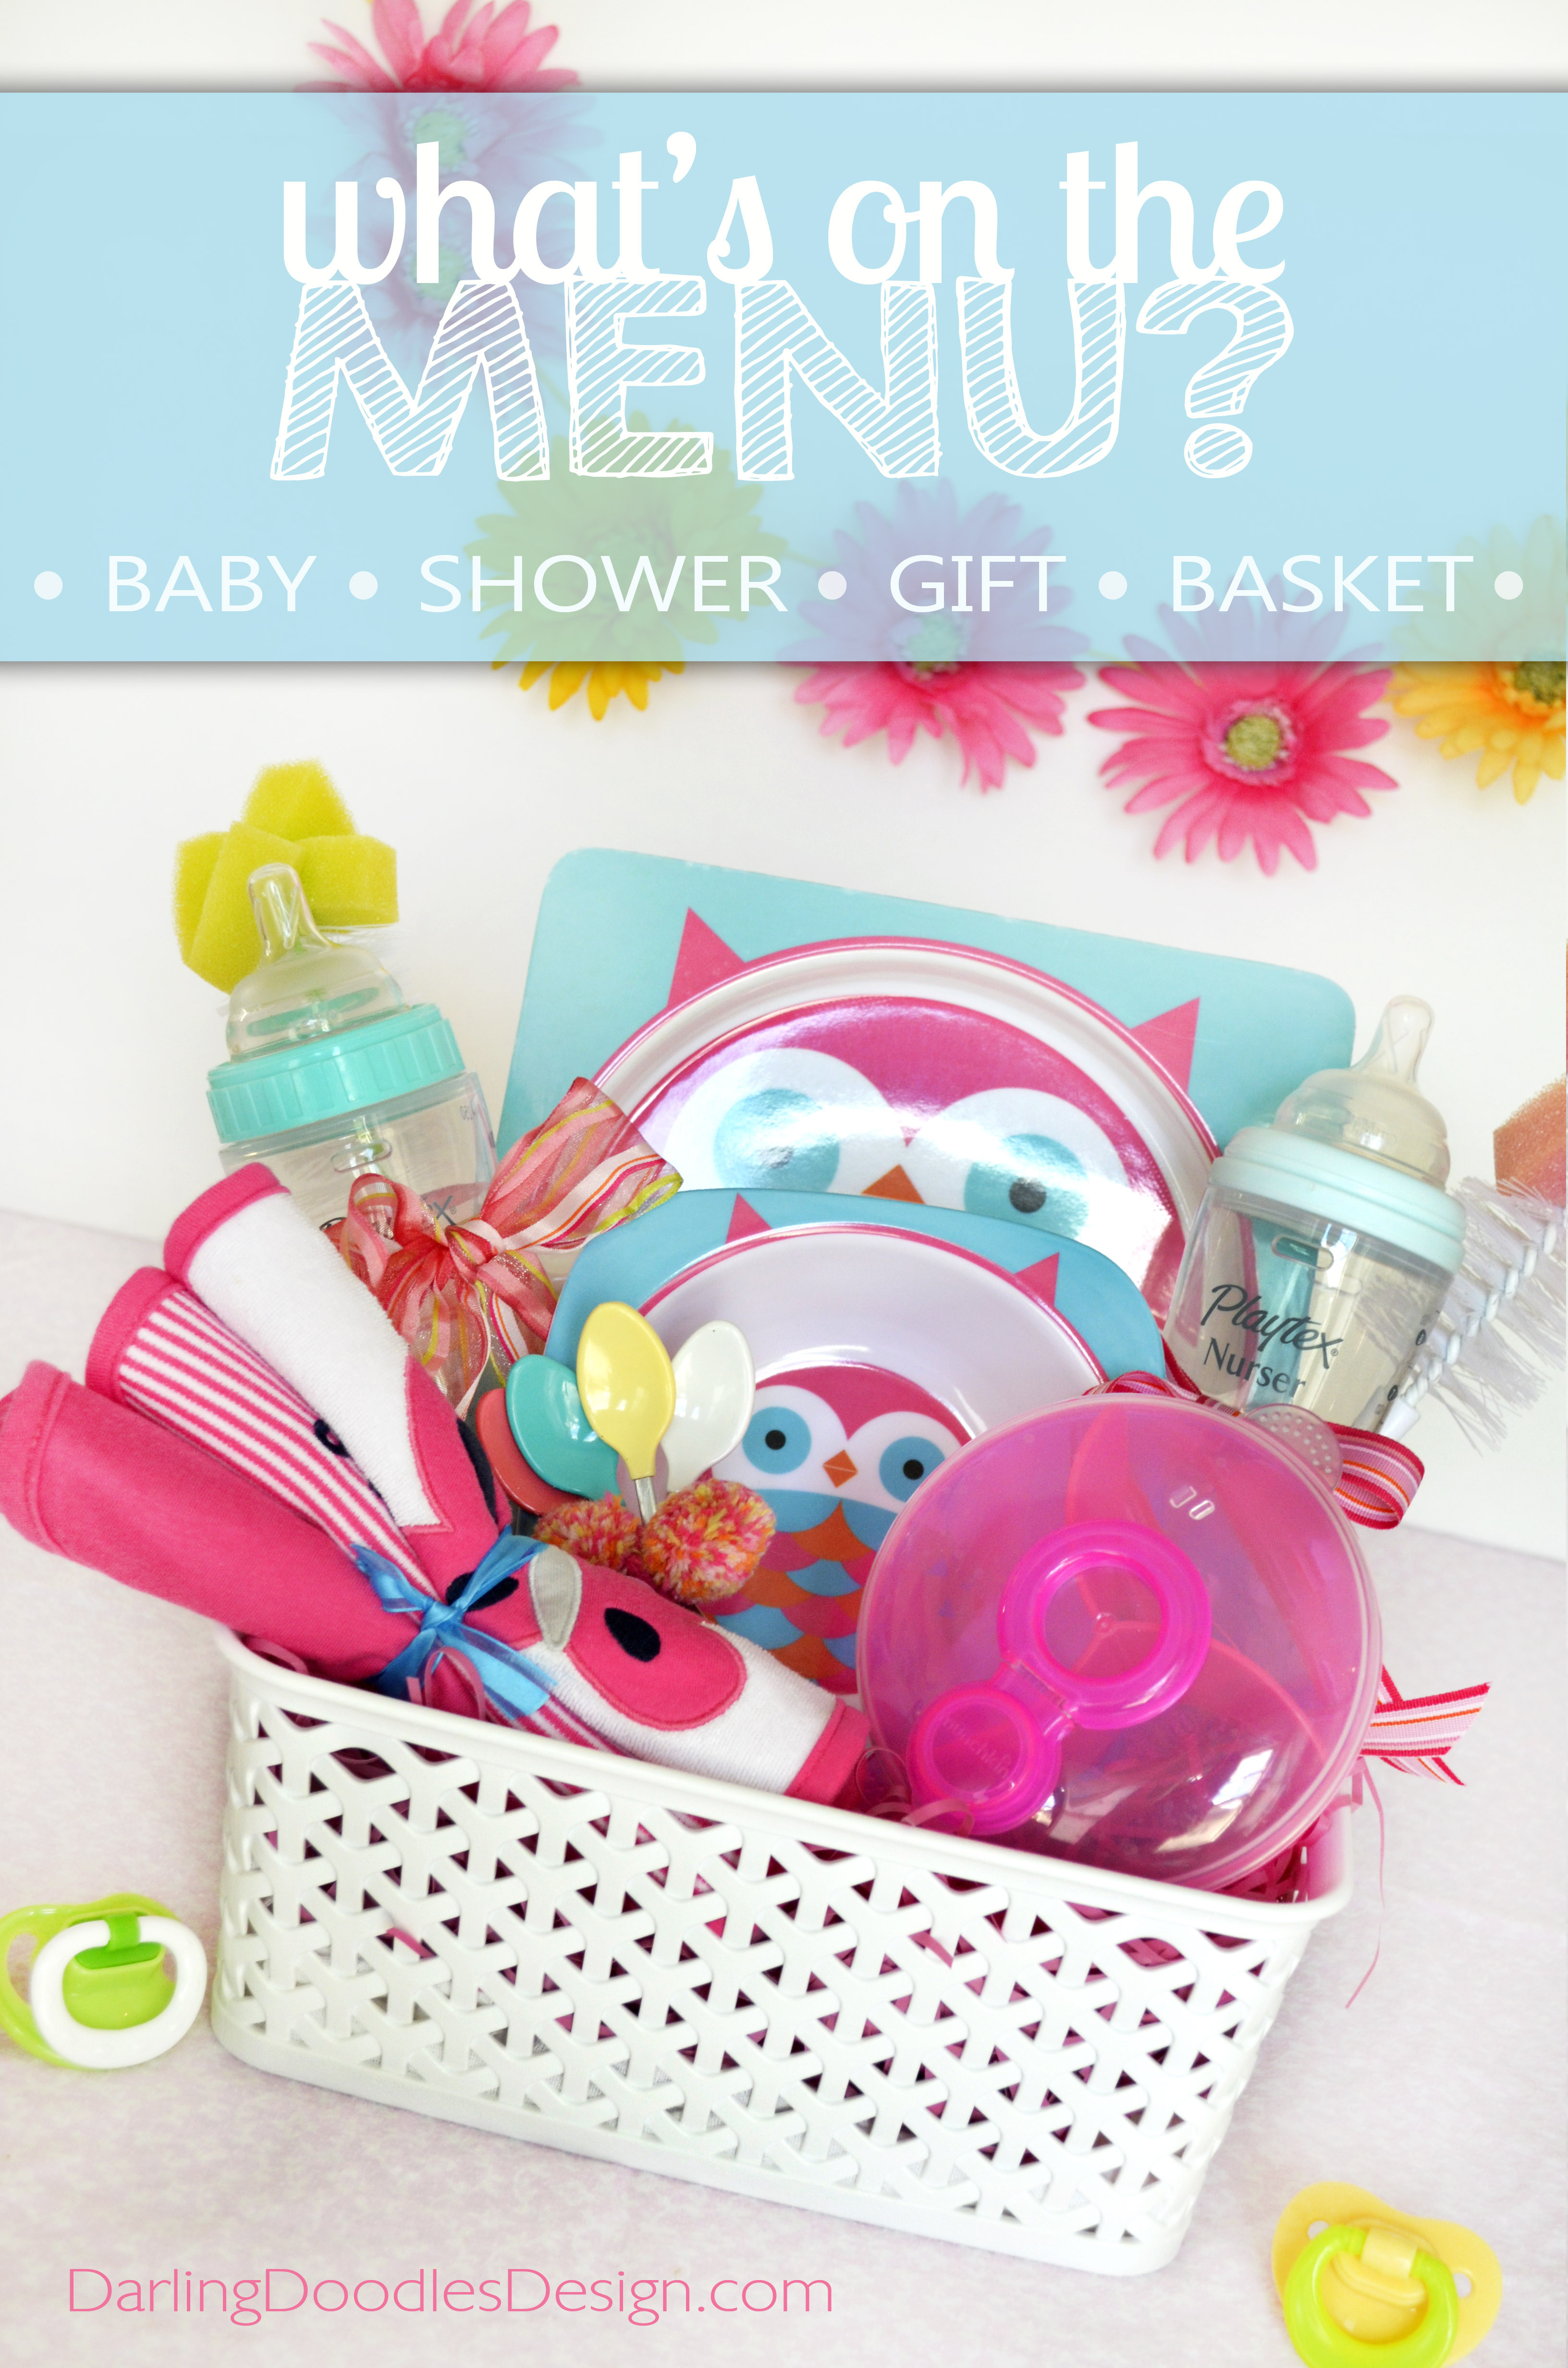 Best ideas about Baby Shower DIY Gifts . Save or Pin Baby Shower Now.